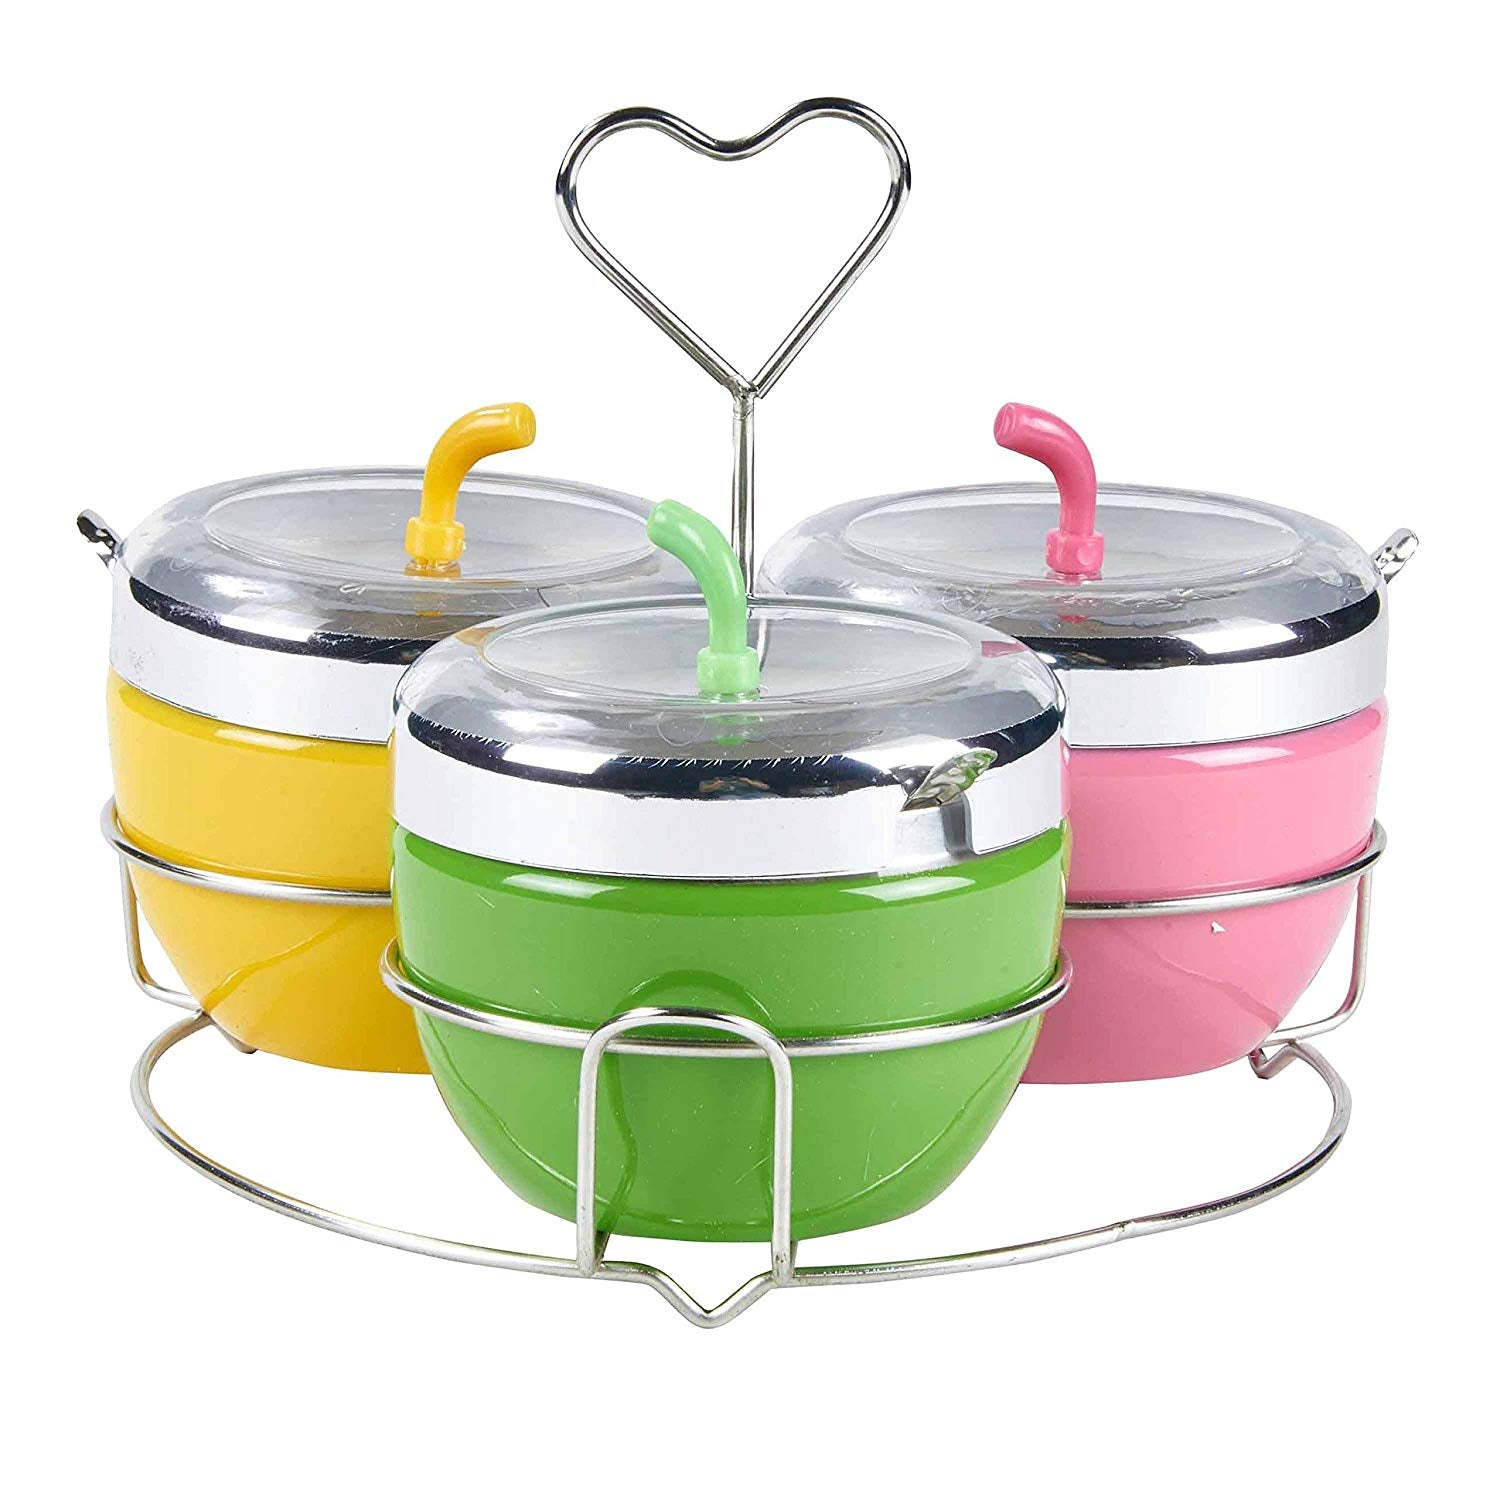 Multi-functional Colorful Stainless Steel Condiment Seasoning Containers Pots Set with Spoons and Rack/Shelf,Silver Tone(Apple Pattern Design),Green,Yellow&Pink